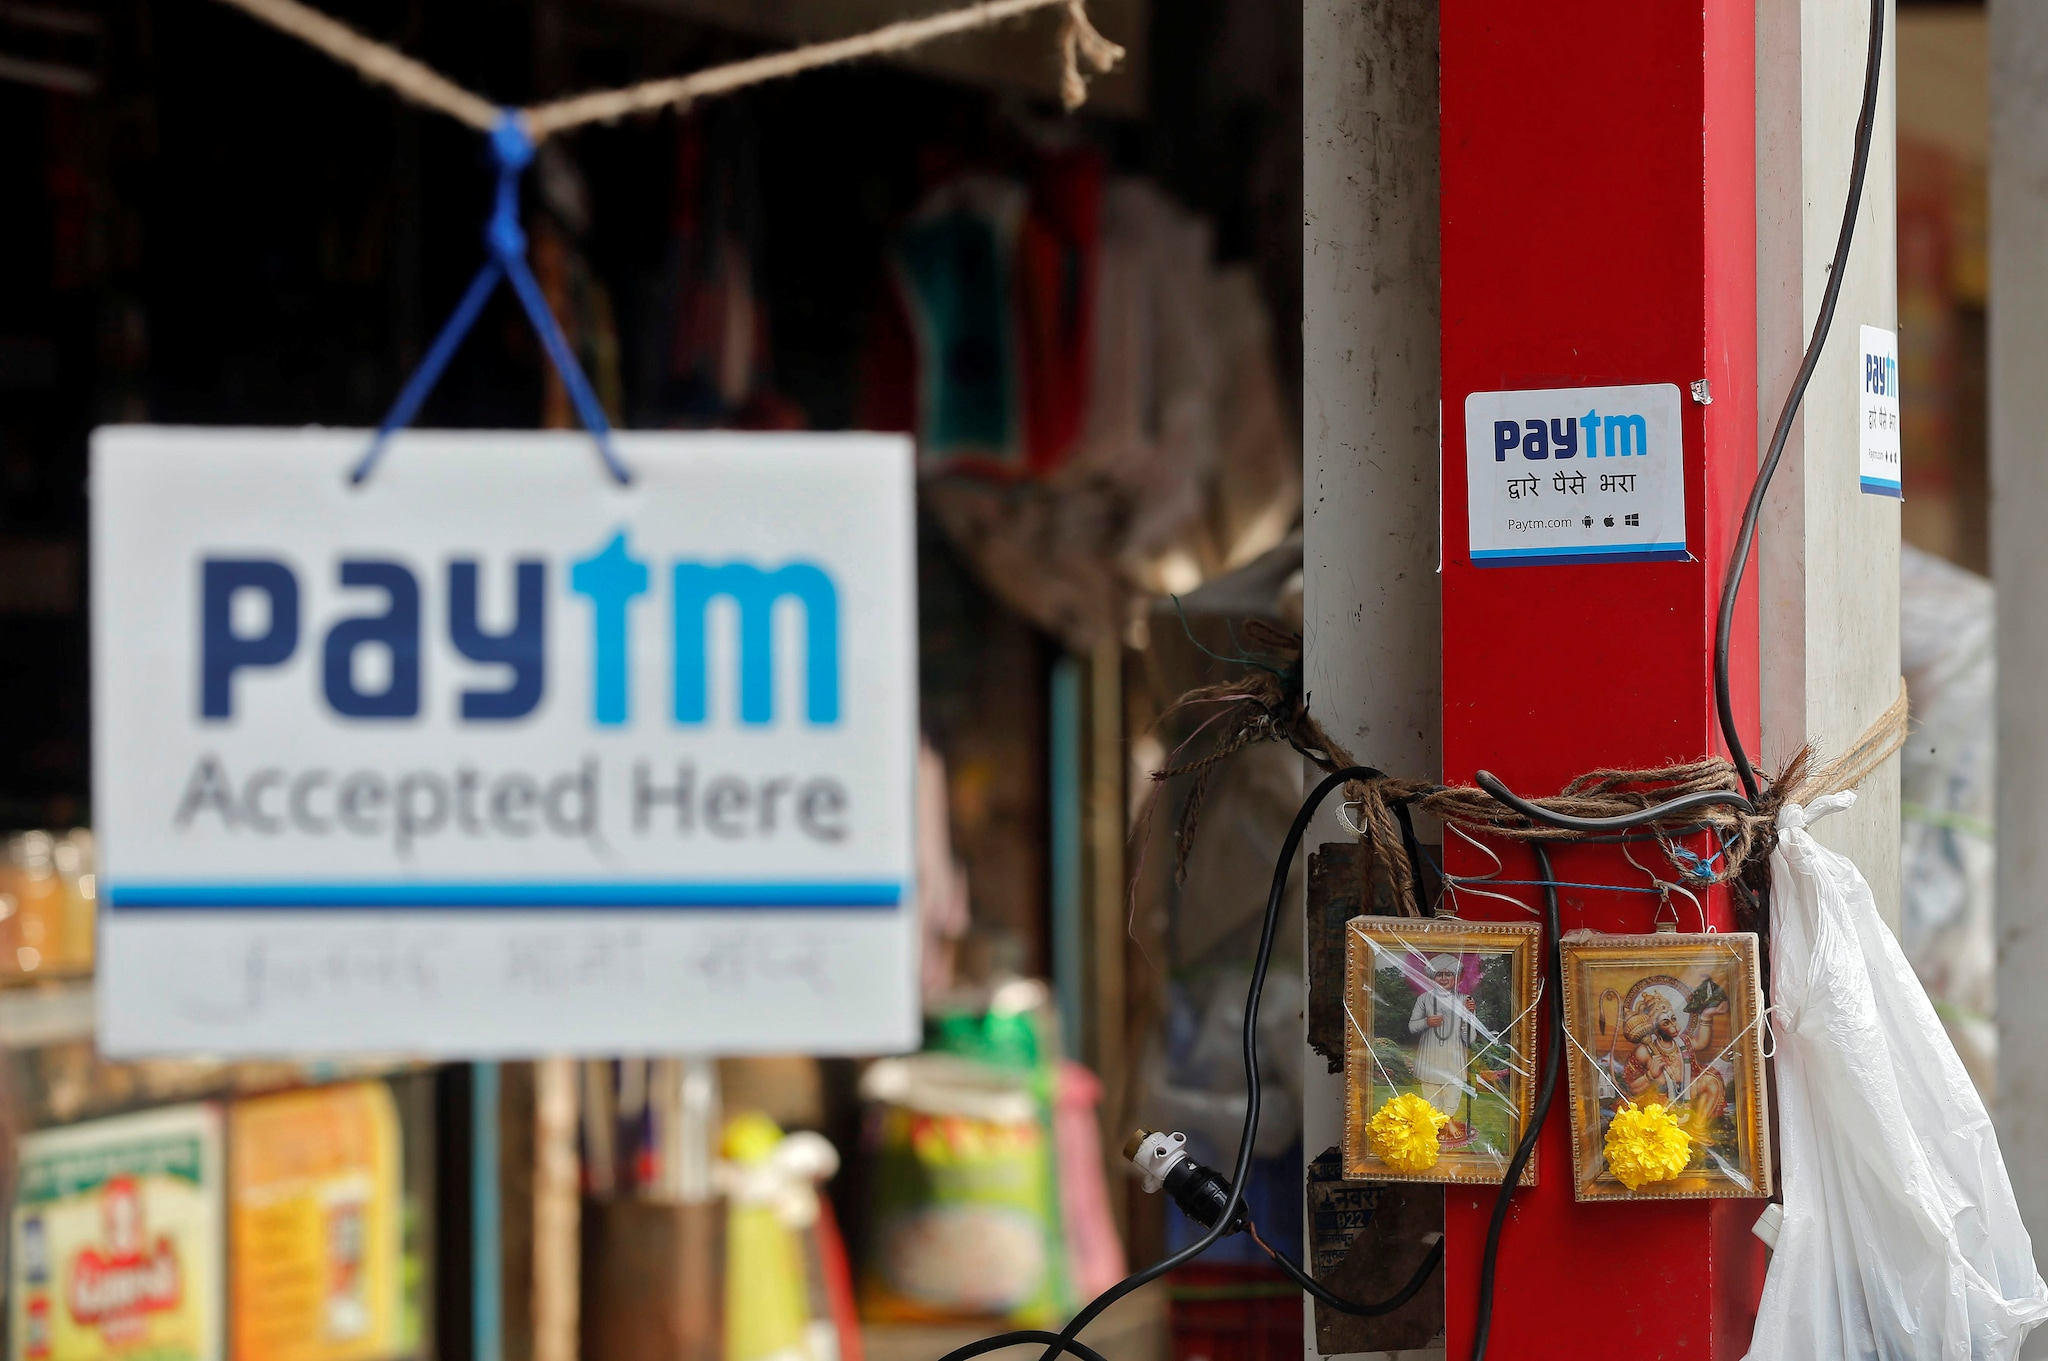 4. Paytm: One97 Communications-owned Paytm, has more than 300 million registered users. The company is among the top e-payment and e-commerce firms in India. (Image: Reuters)